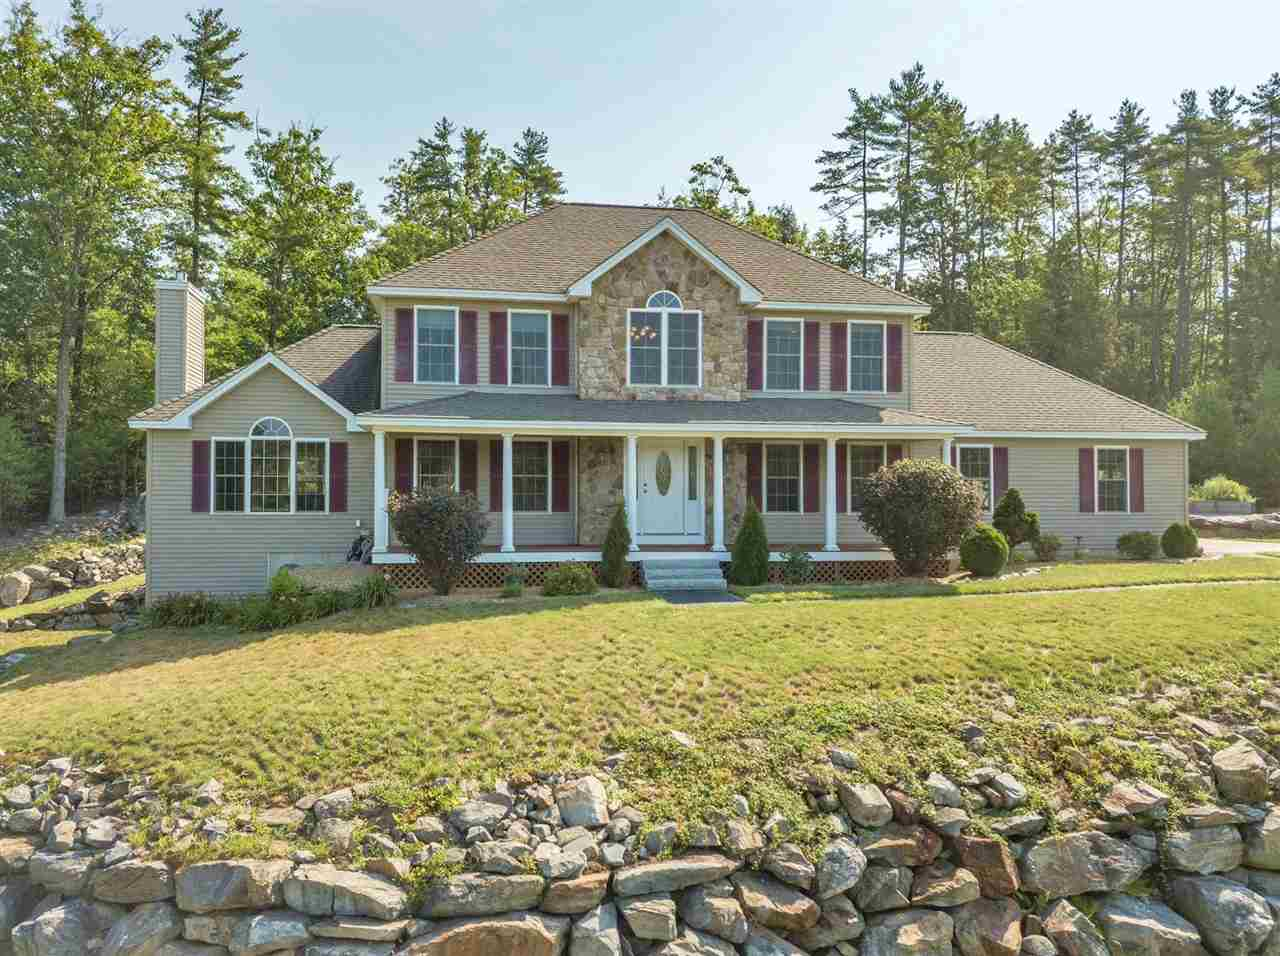 Photo of 42 ROLLING HILL Drive Weare NH 03281